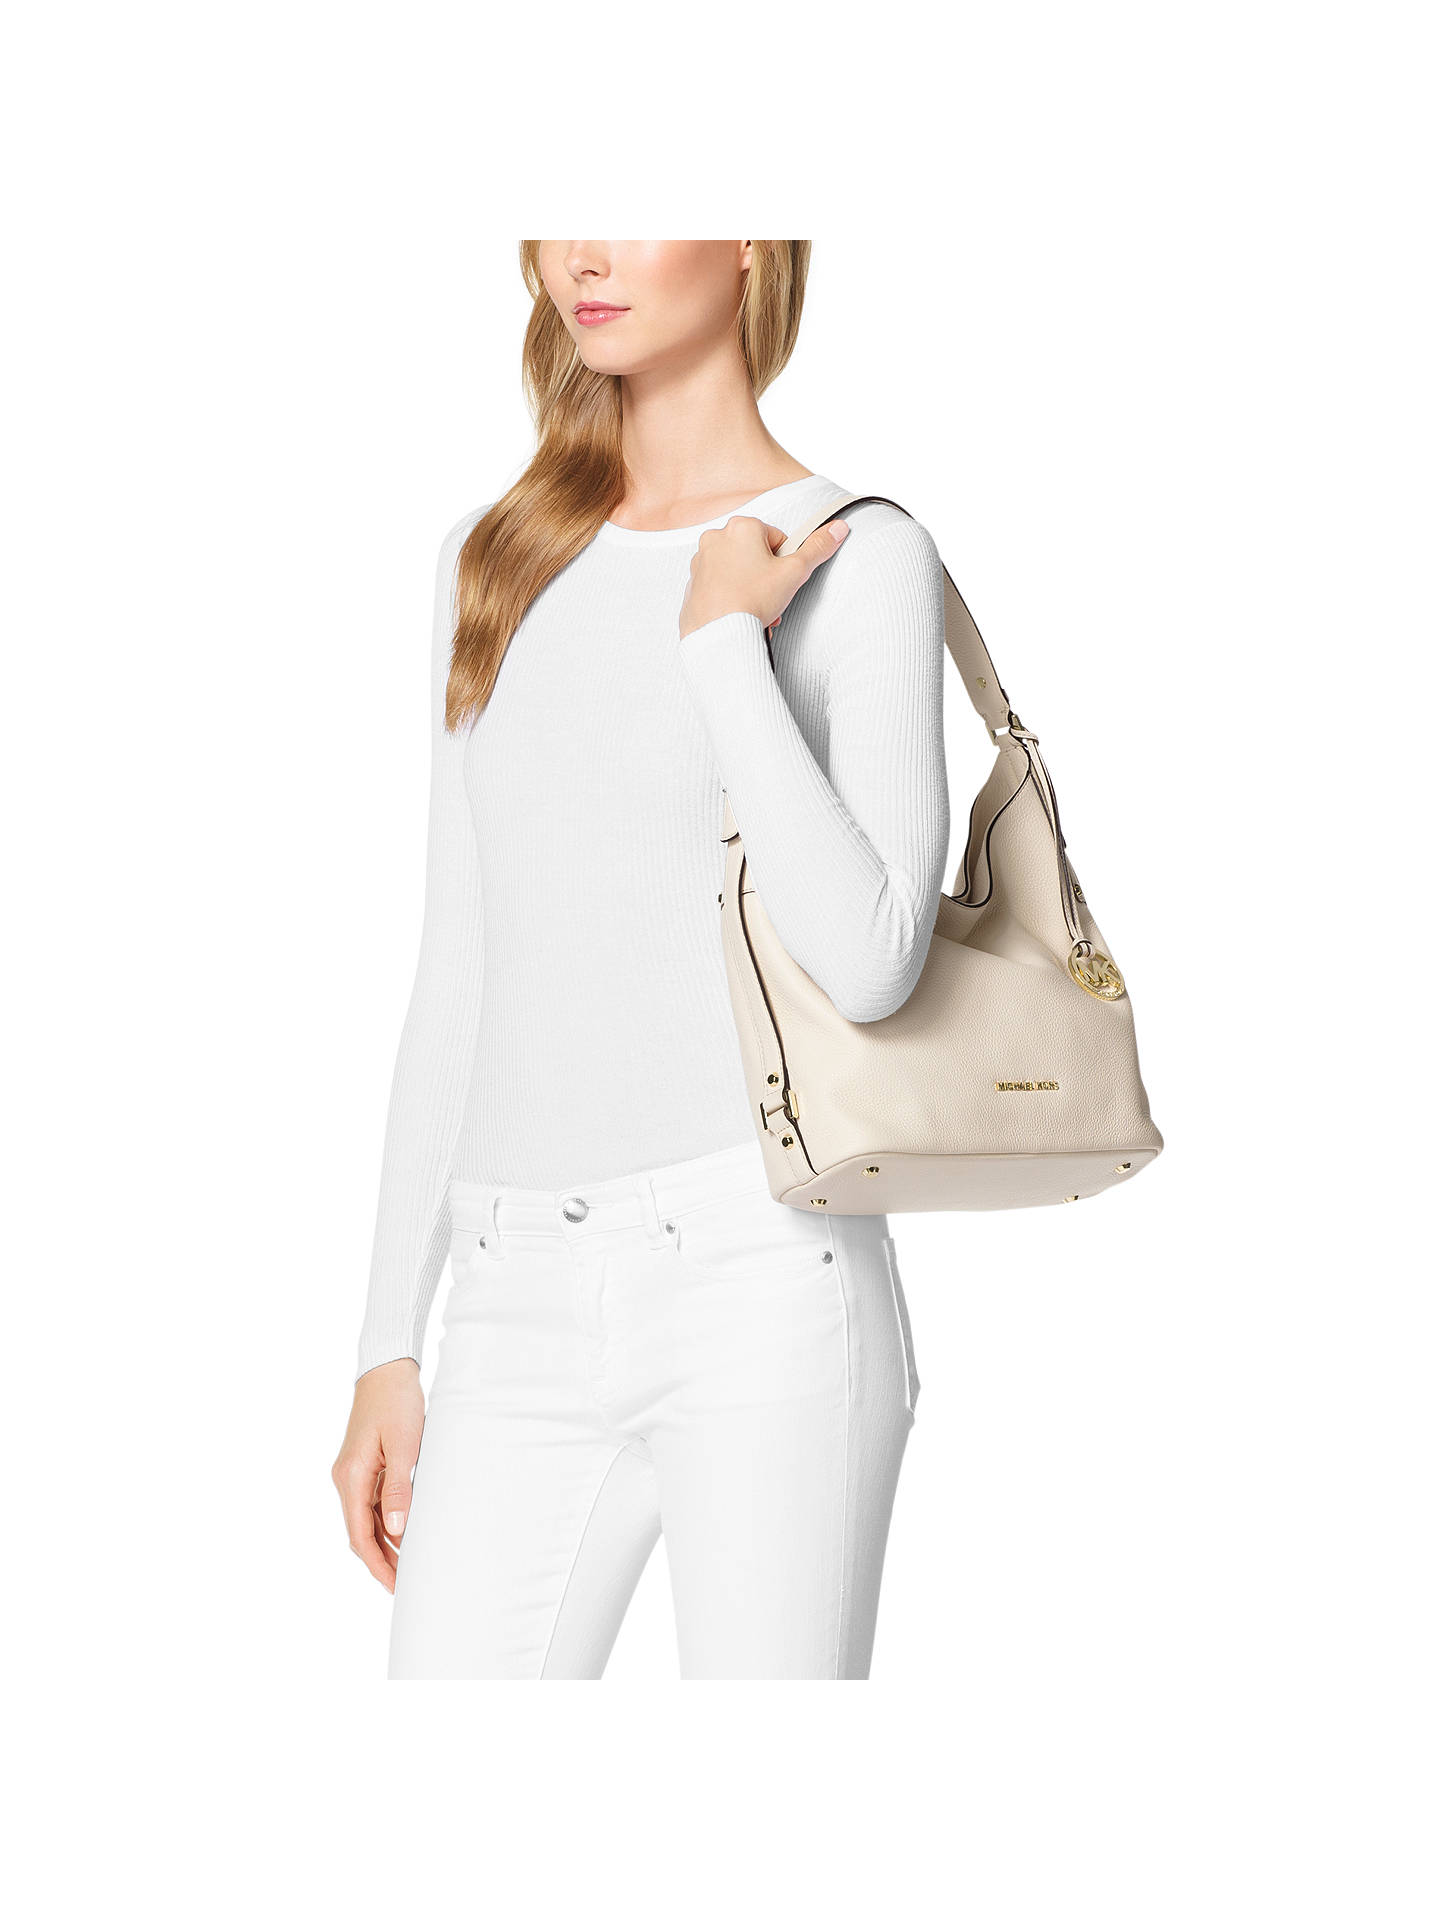 587a2c7e512ac6 Buy MICHAEL Michael Kors Bedford Belted Large Leather Shoulder Bag, Cream  Online at johnlewis.